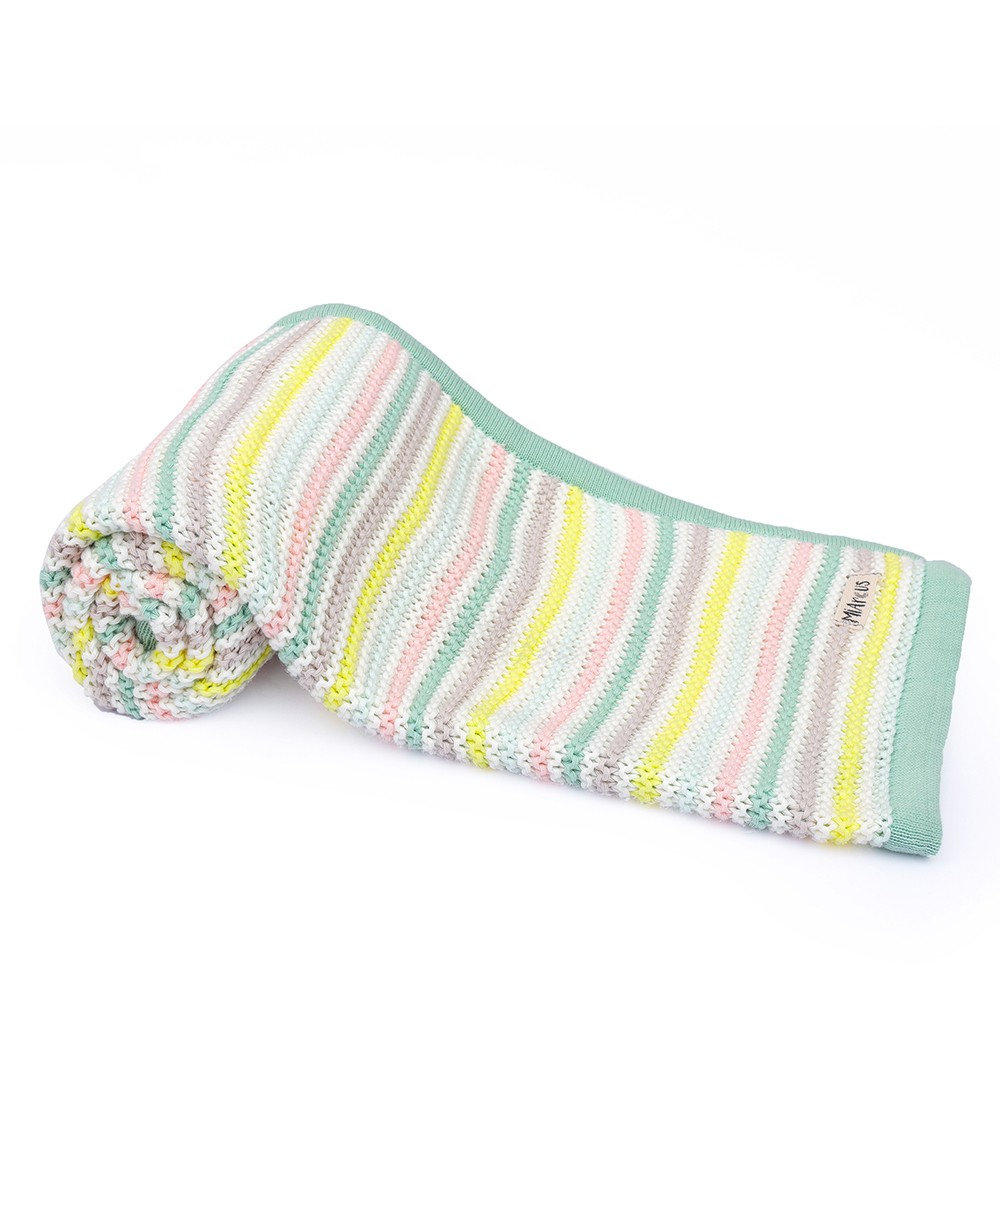 Pearl Knitted Blanket - Arcus